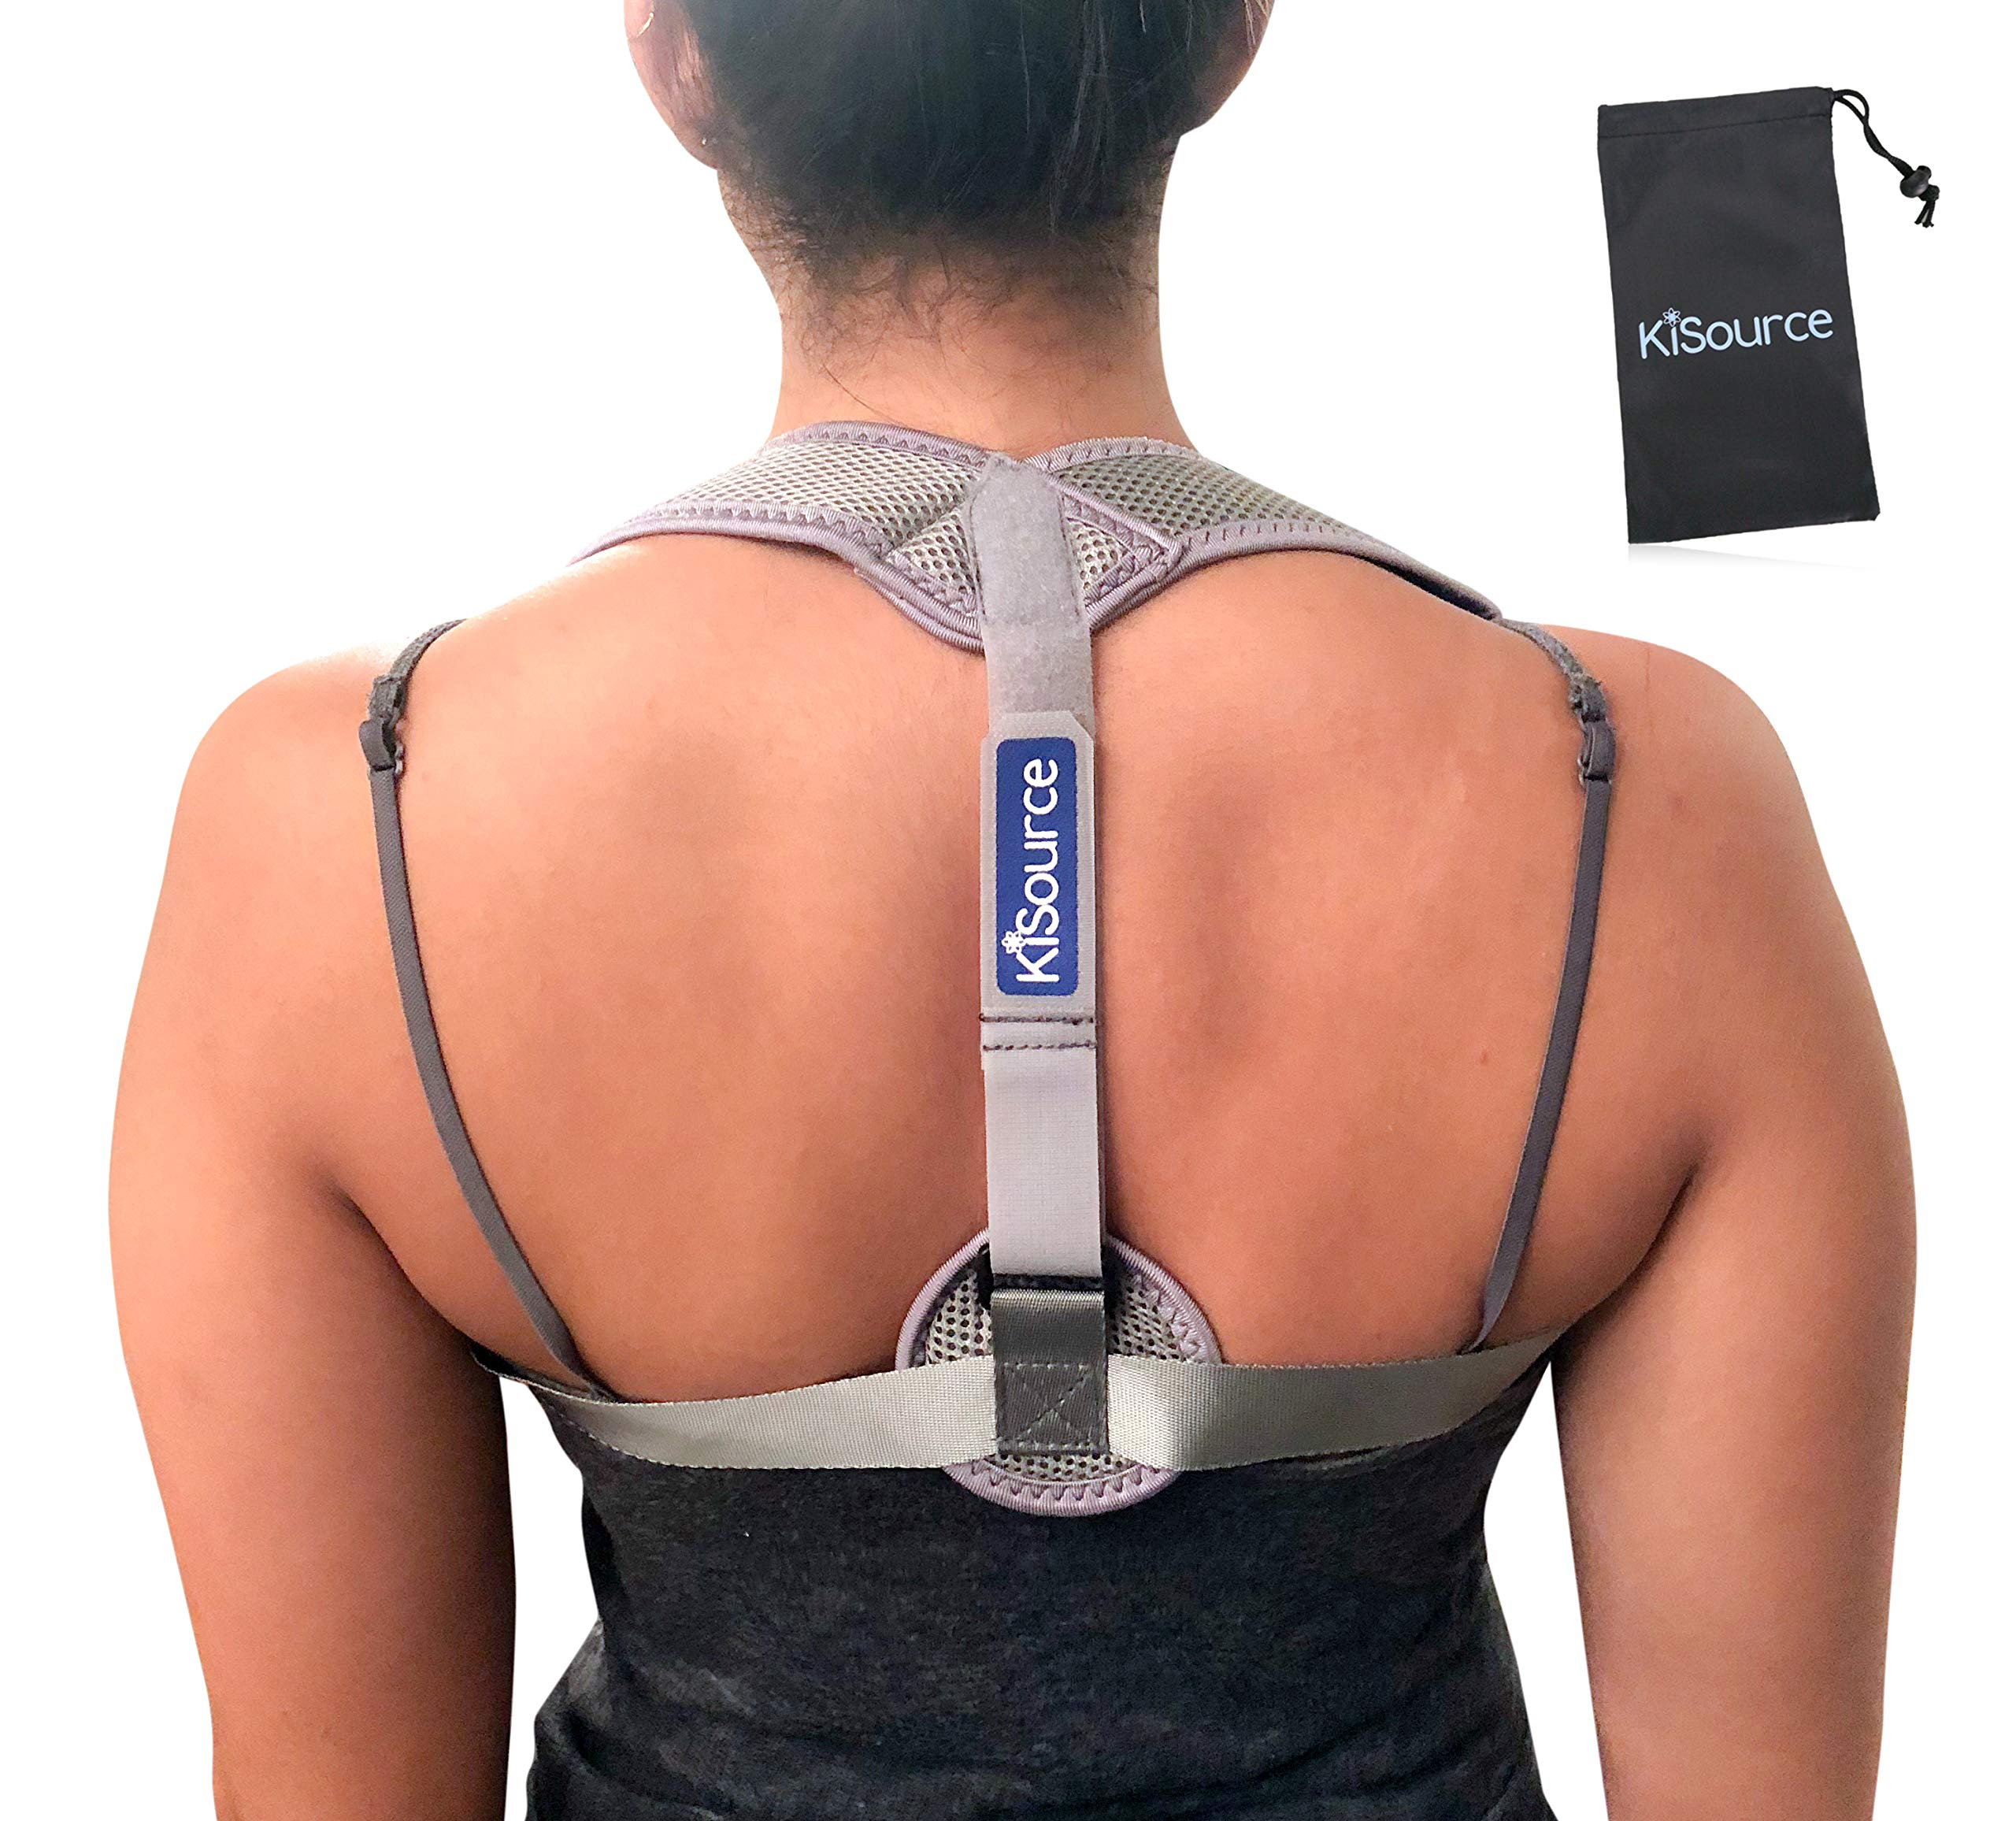 Back Posture Corrector for Men & Women | Comfortable & Discrete (Grey) Back Brace Provides Neck & Back Pain Relief | Improves & Straightens Posture